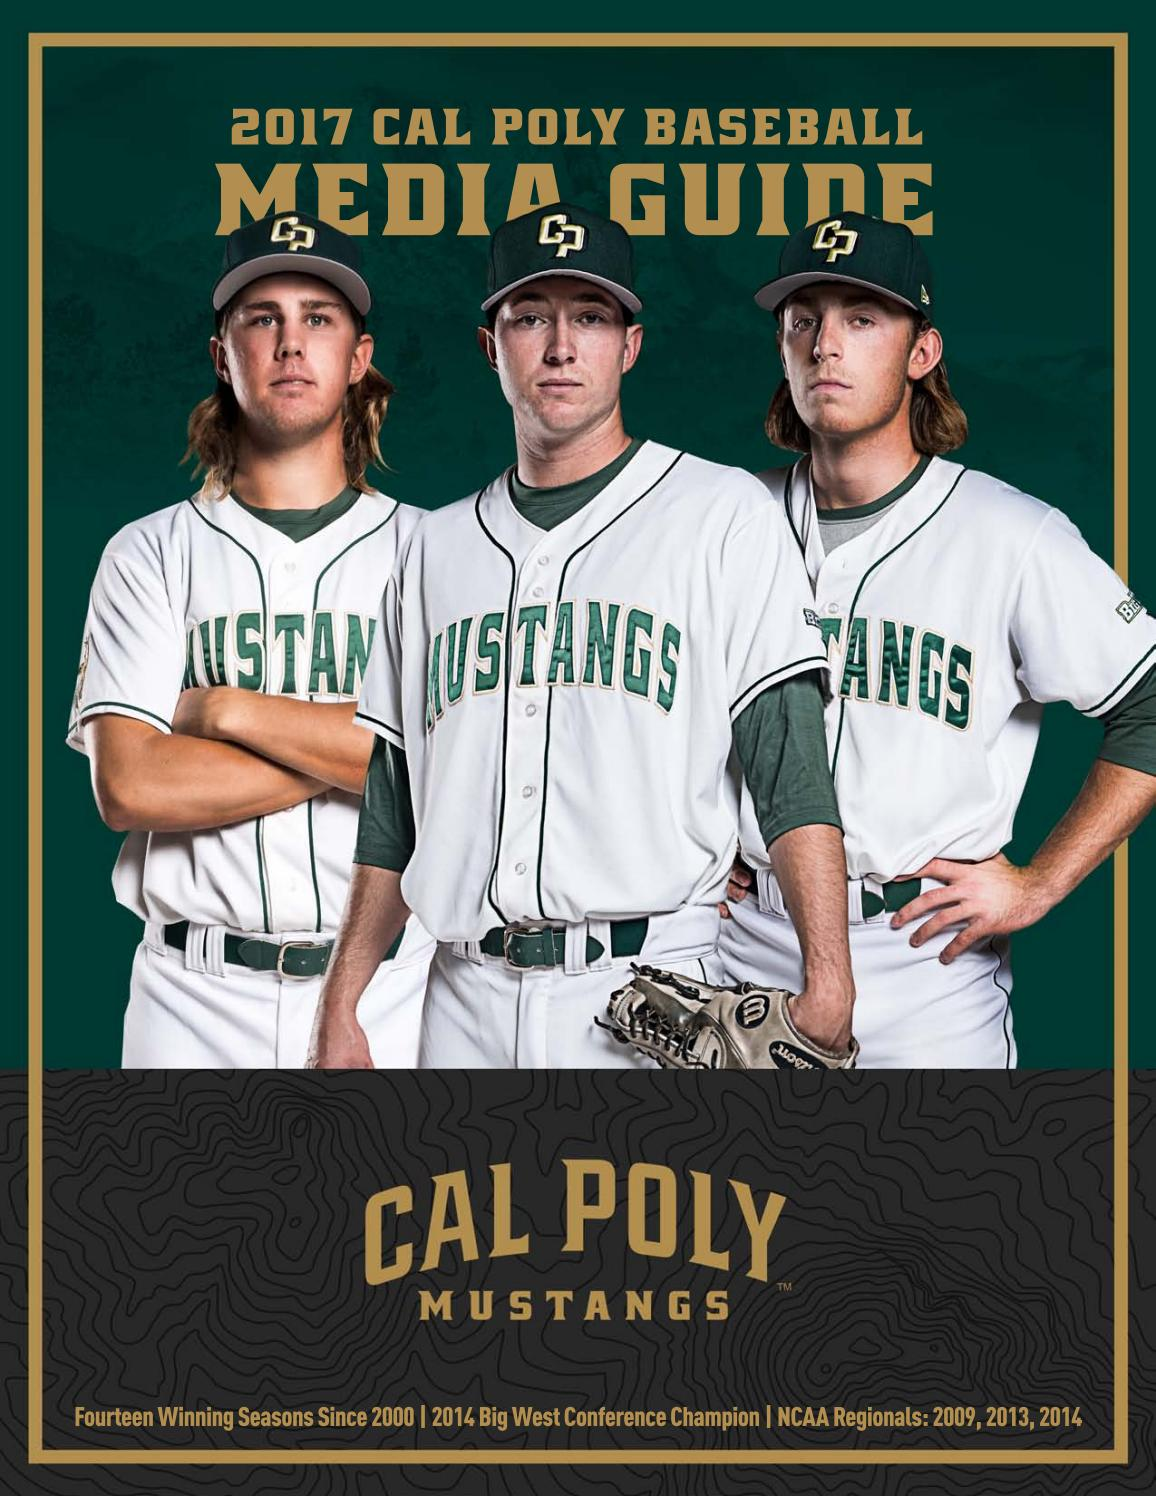 6a84f48d9086 2017 Cal Poly Baseball Media Guide by Cal Poly Athletics - issuu